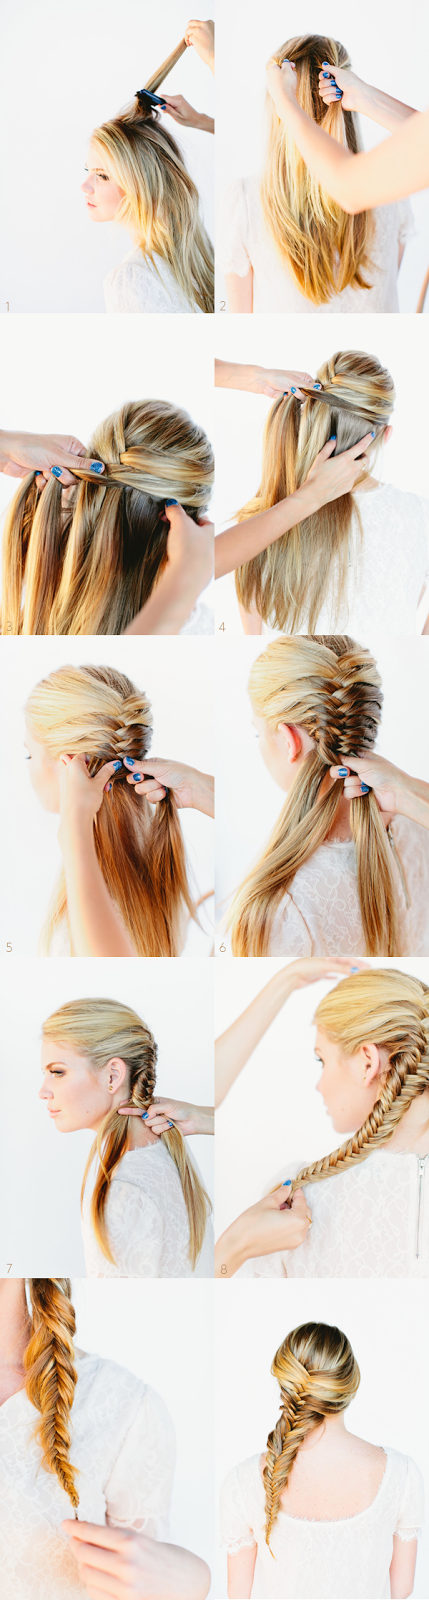 Fishtail-braid-wedding-hairstyles-for-long-hair-tutorial_(1)_large